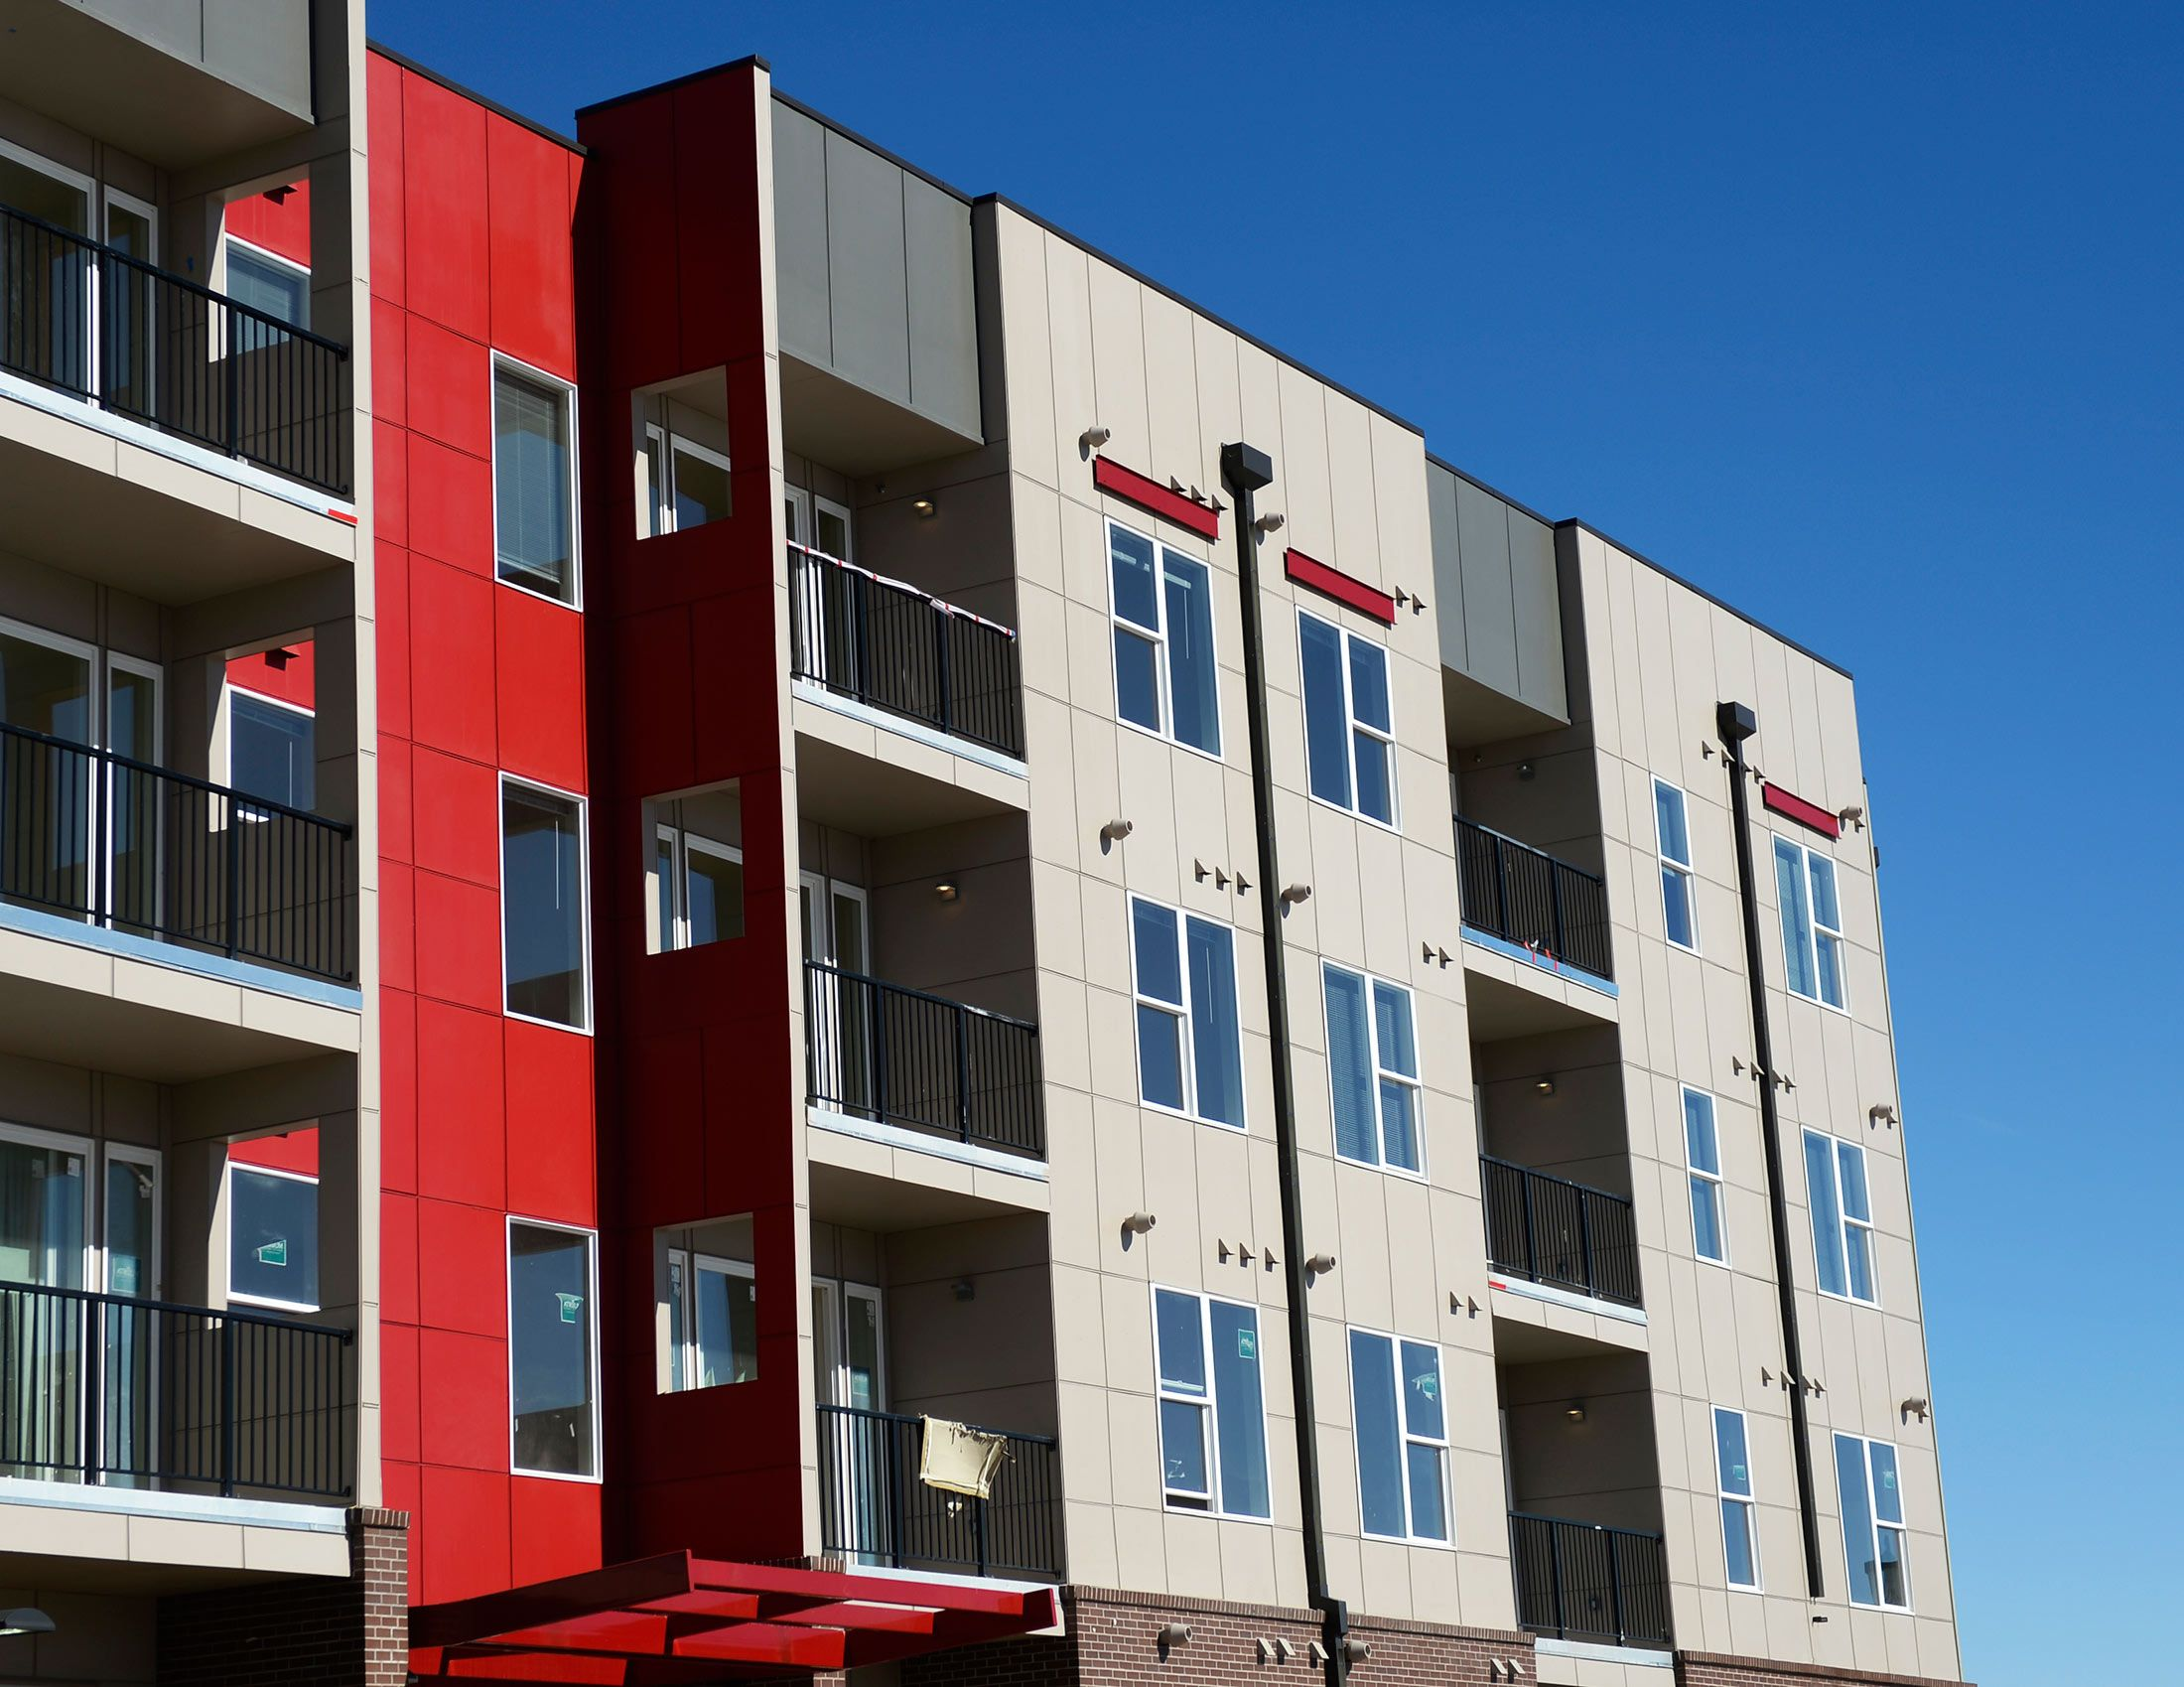 Uncategorized ada homes in colorado springs floor plans - Why It S So Hard To Build Affordable Housing It S Not Affordable